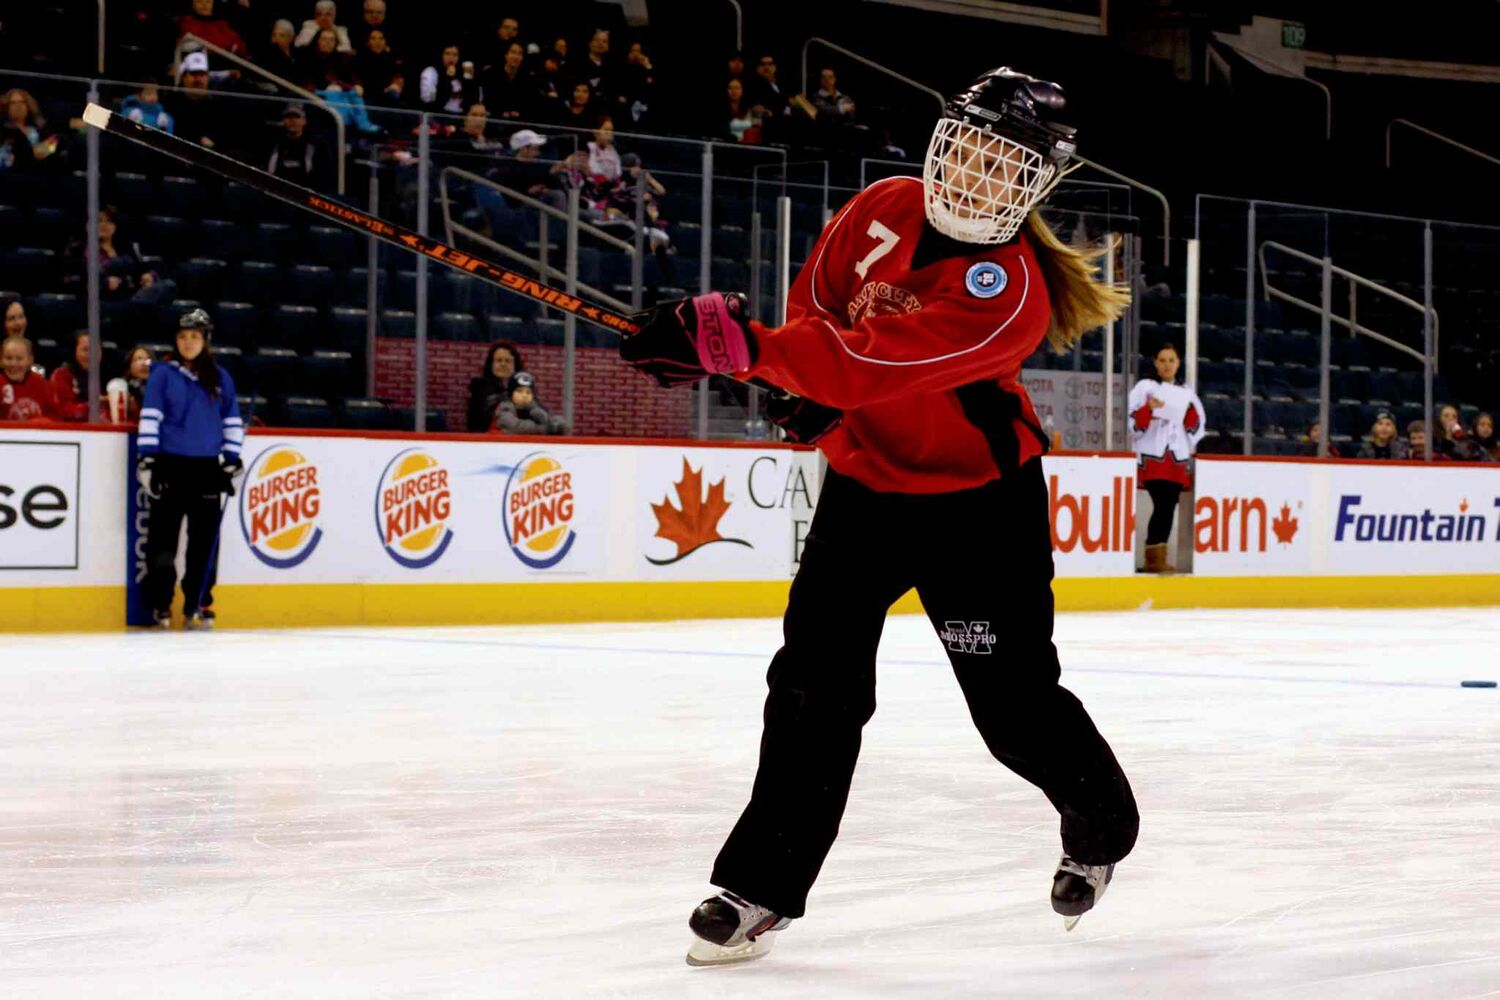 Sydney Meilleur of the Park City Wildcats takes part in the Hardest Shot Competition at the Winnipeg Ringette League's all-star game at the MTS Centre.  (Jordan Thompson)